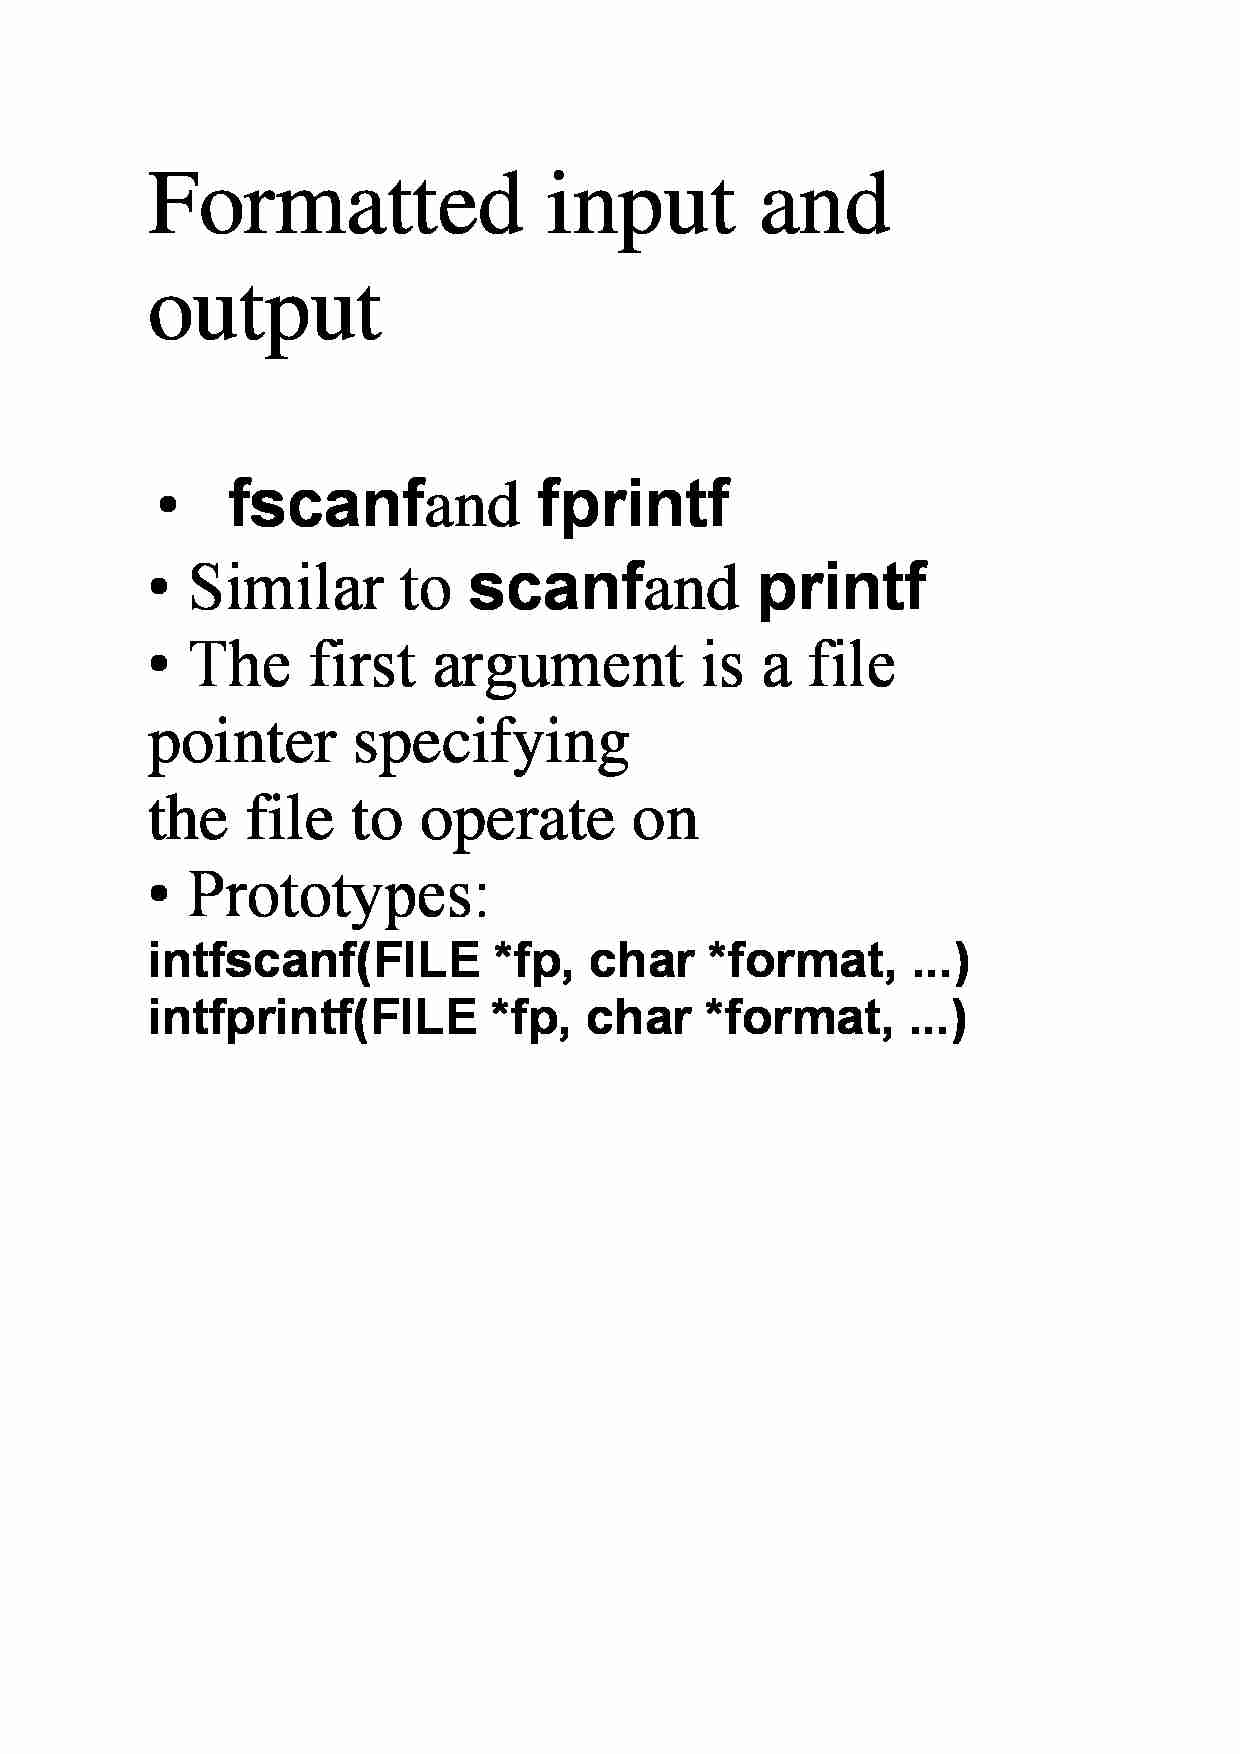 Formatted input and output - strona 1